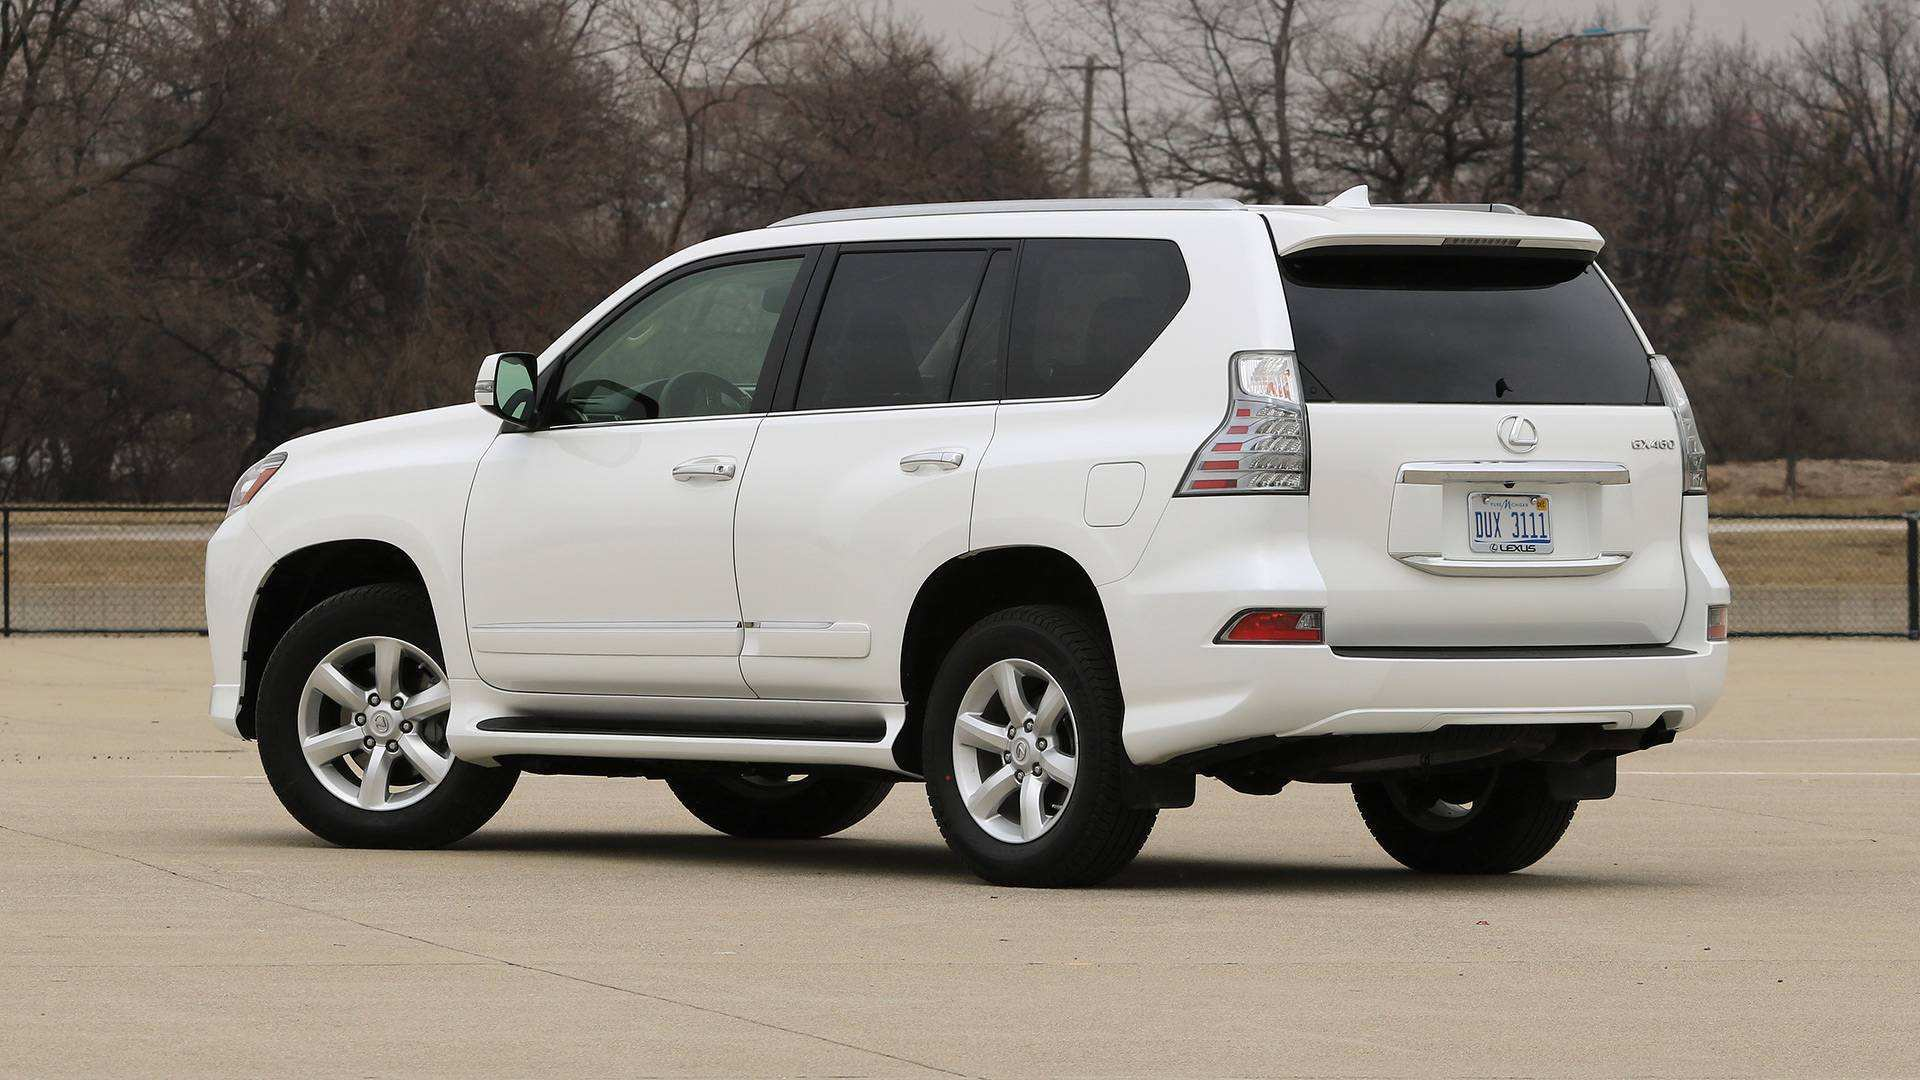 88 All New Lexus Gx 460 Pictures Performance and New Engine for Lexus Gx 460 Pictures